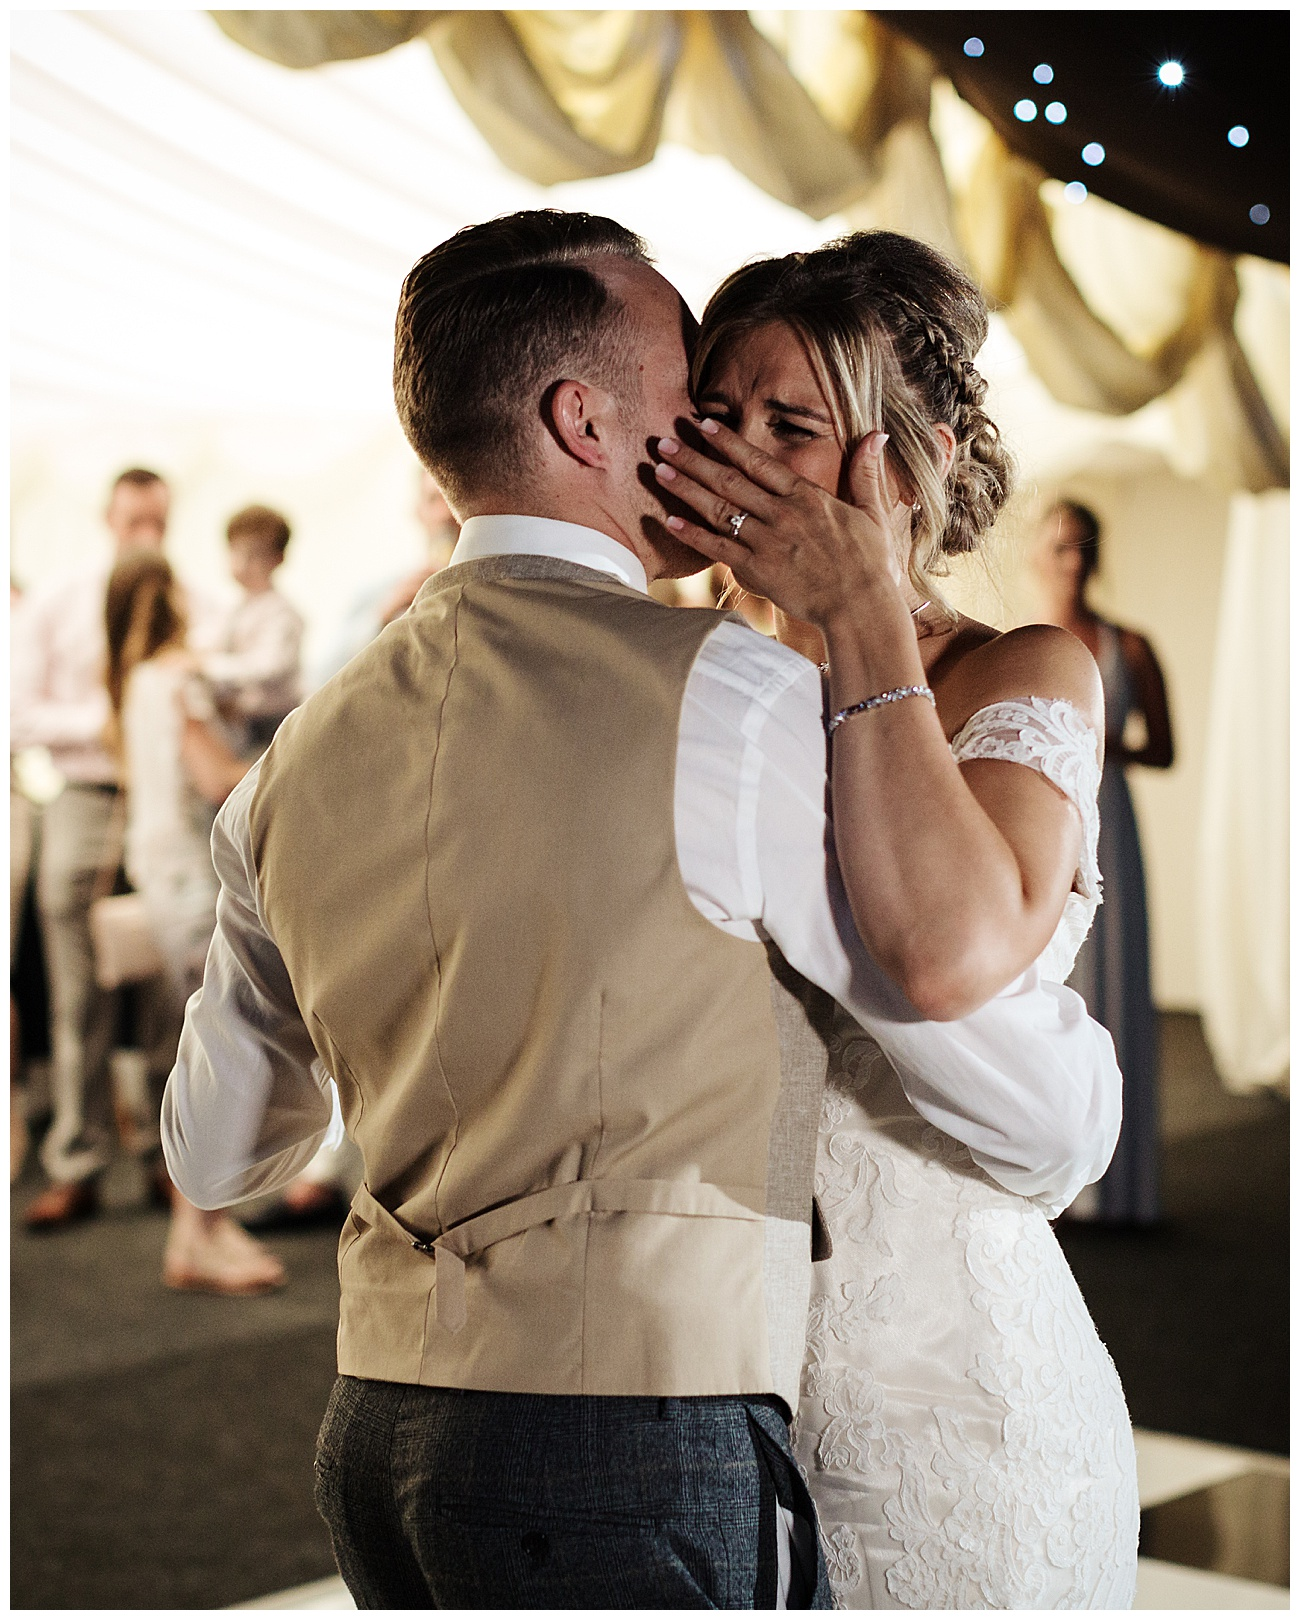 The bride gets emotional during their first dance